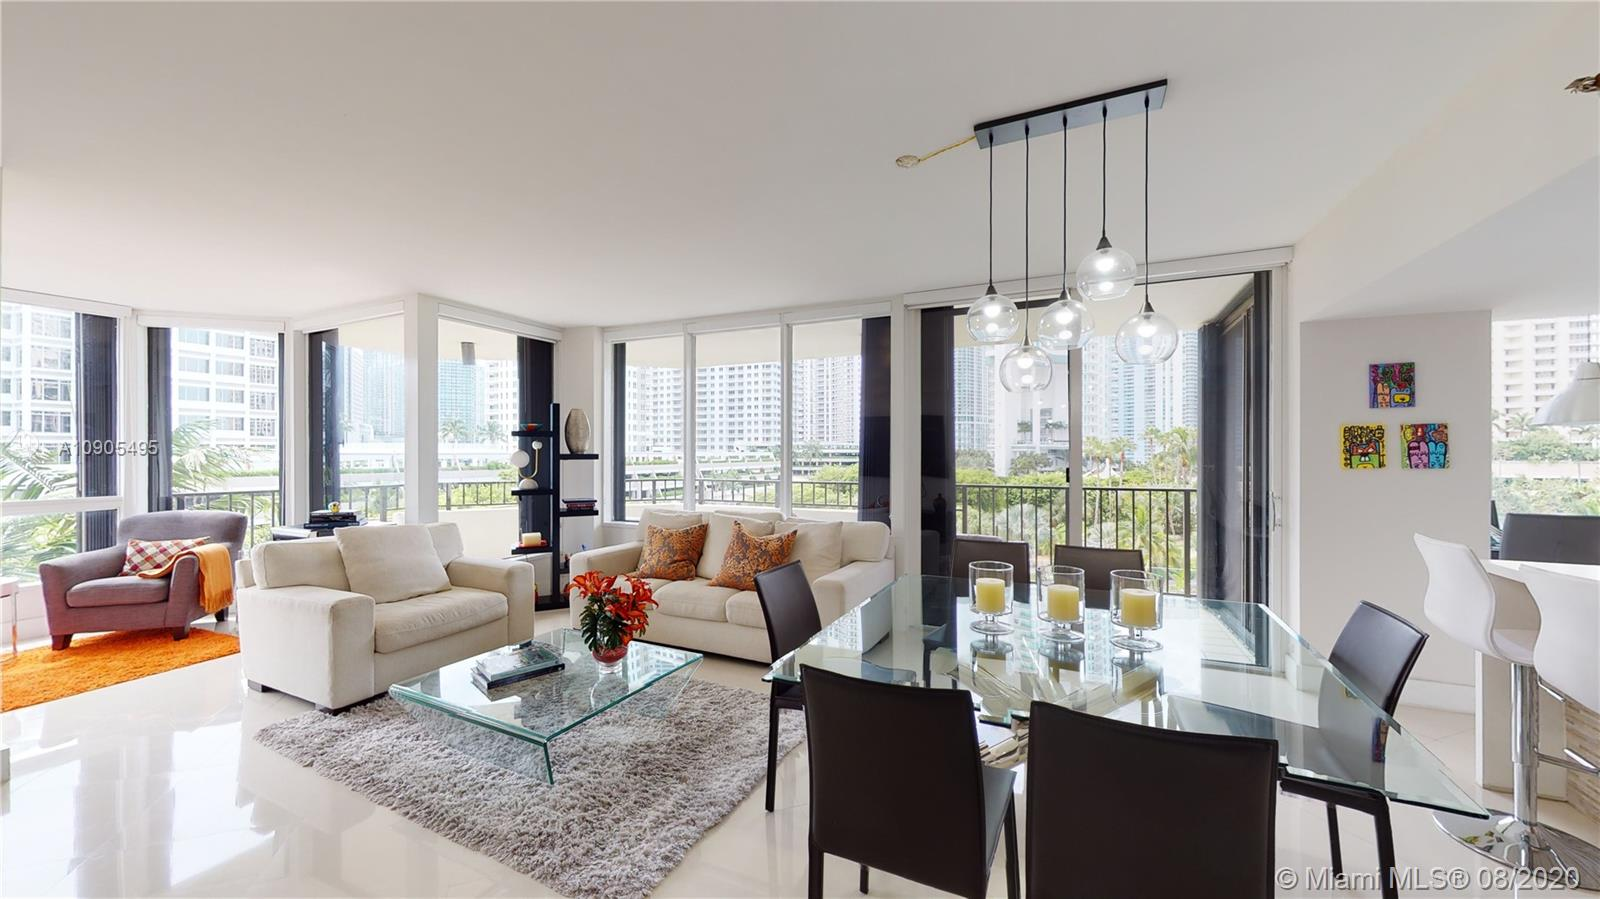 Brickell Key One #A621 - 520 Brickell Key Dr #A621, Miami, FL 33131